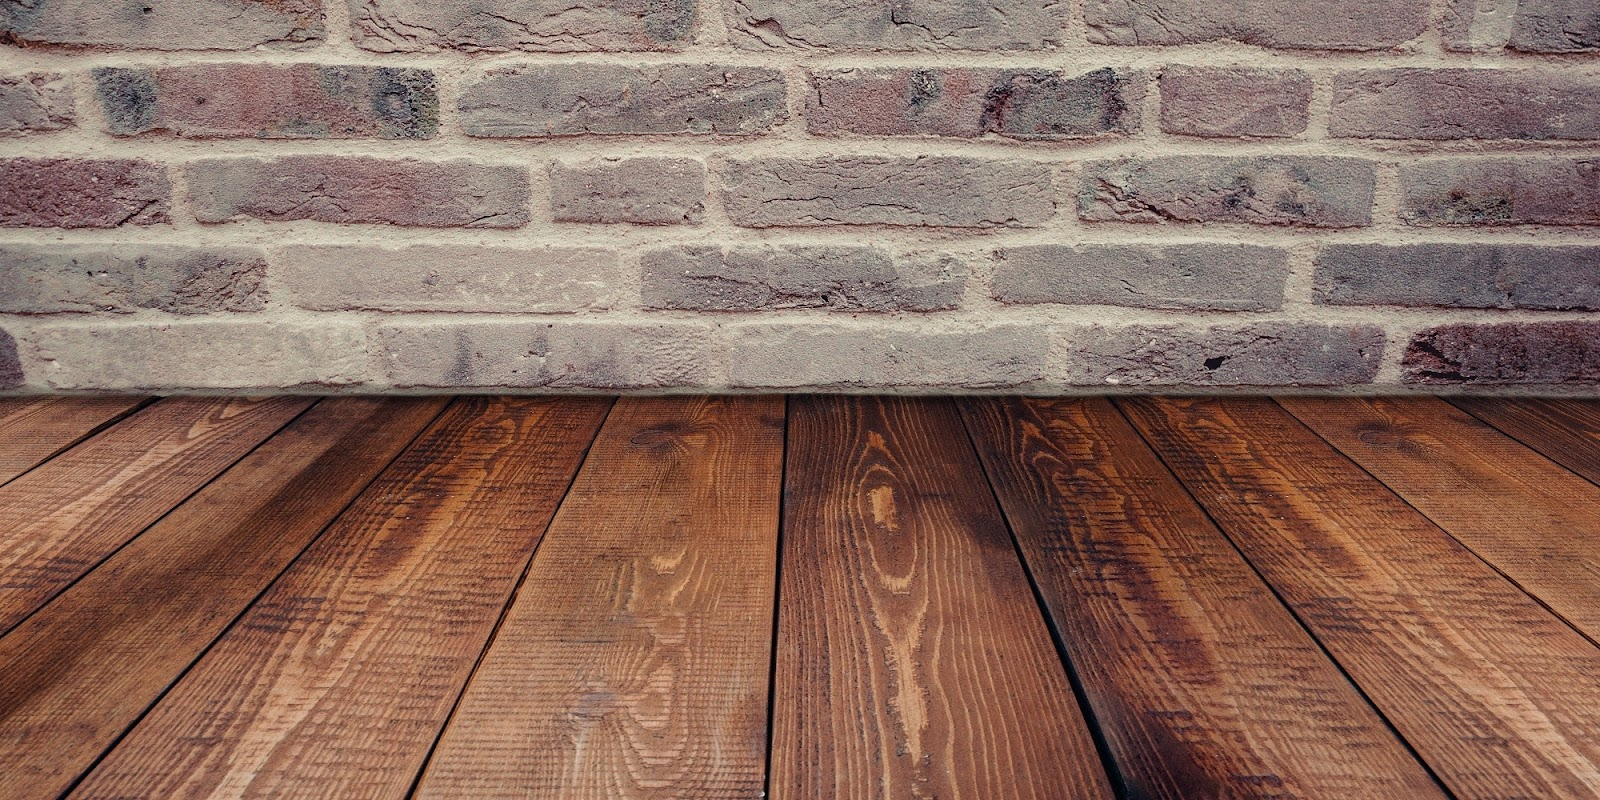 hardwood floor and brick wall